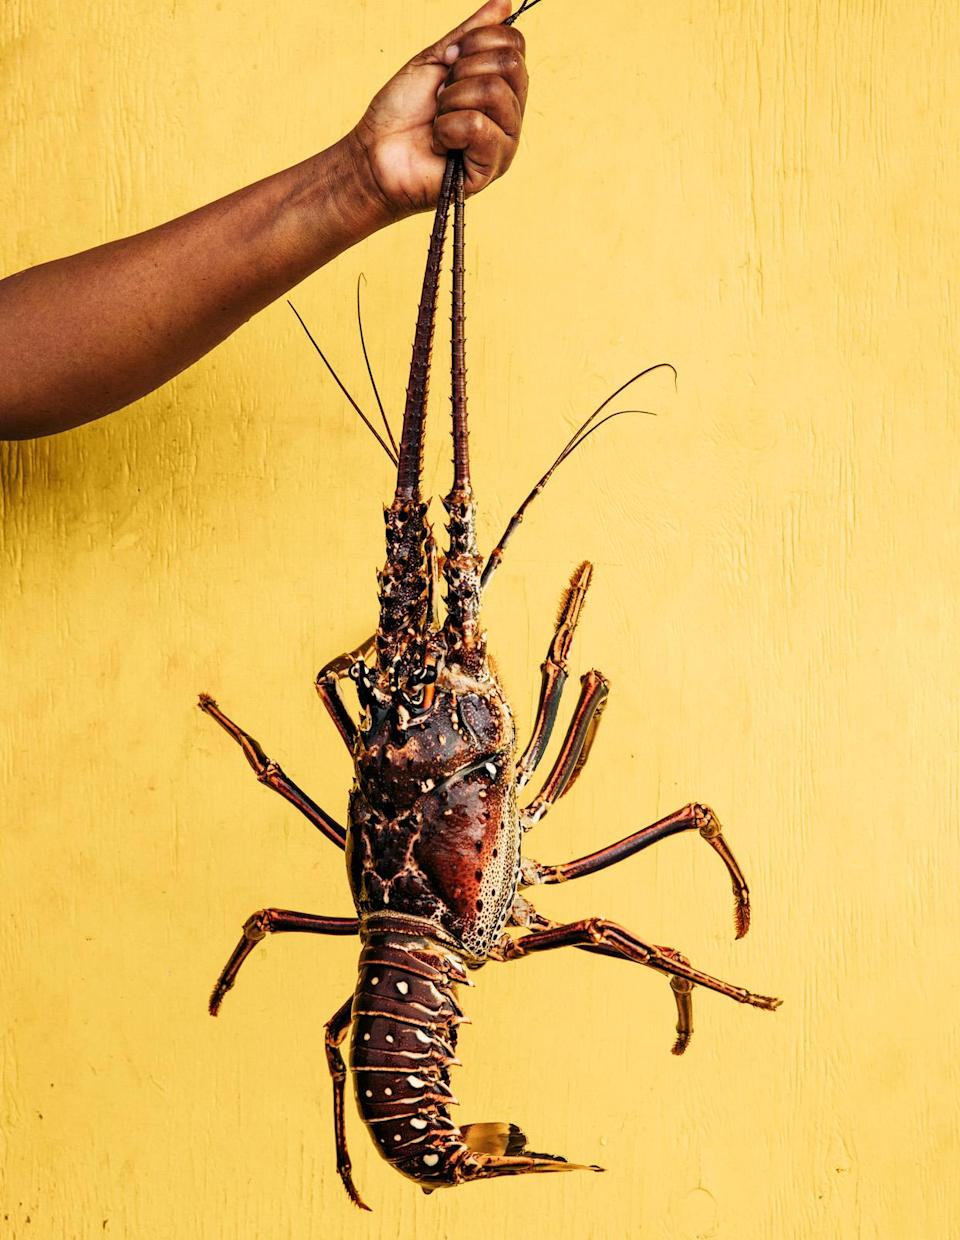 """<p>Food shopping on Bequia calls for a visit to the day-boat fishermen who dock at the islands capital Port Elizabeth, and sell the day's catch, including spiny lobster, <a href=""""https://www.marthastewart.com/343354/fresh-tuna-recipes"""" rel=""""nofollow noopener"""" target=""""_blank"""" data-ylk=""""slk:tuna"""" class=""""link rapid-noclick-resp"""">tuna</a>, and mahi-mahi.</p>"""